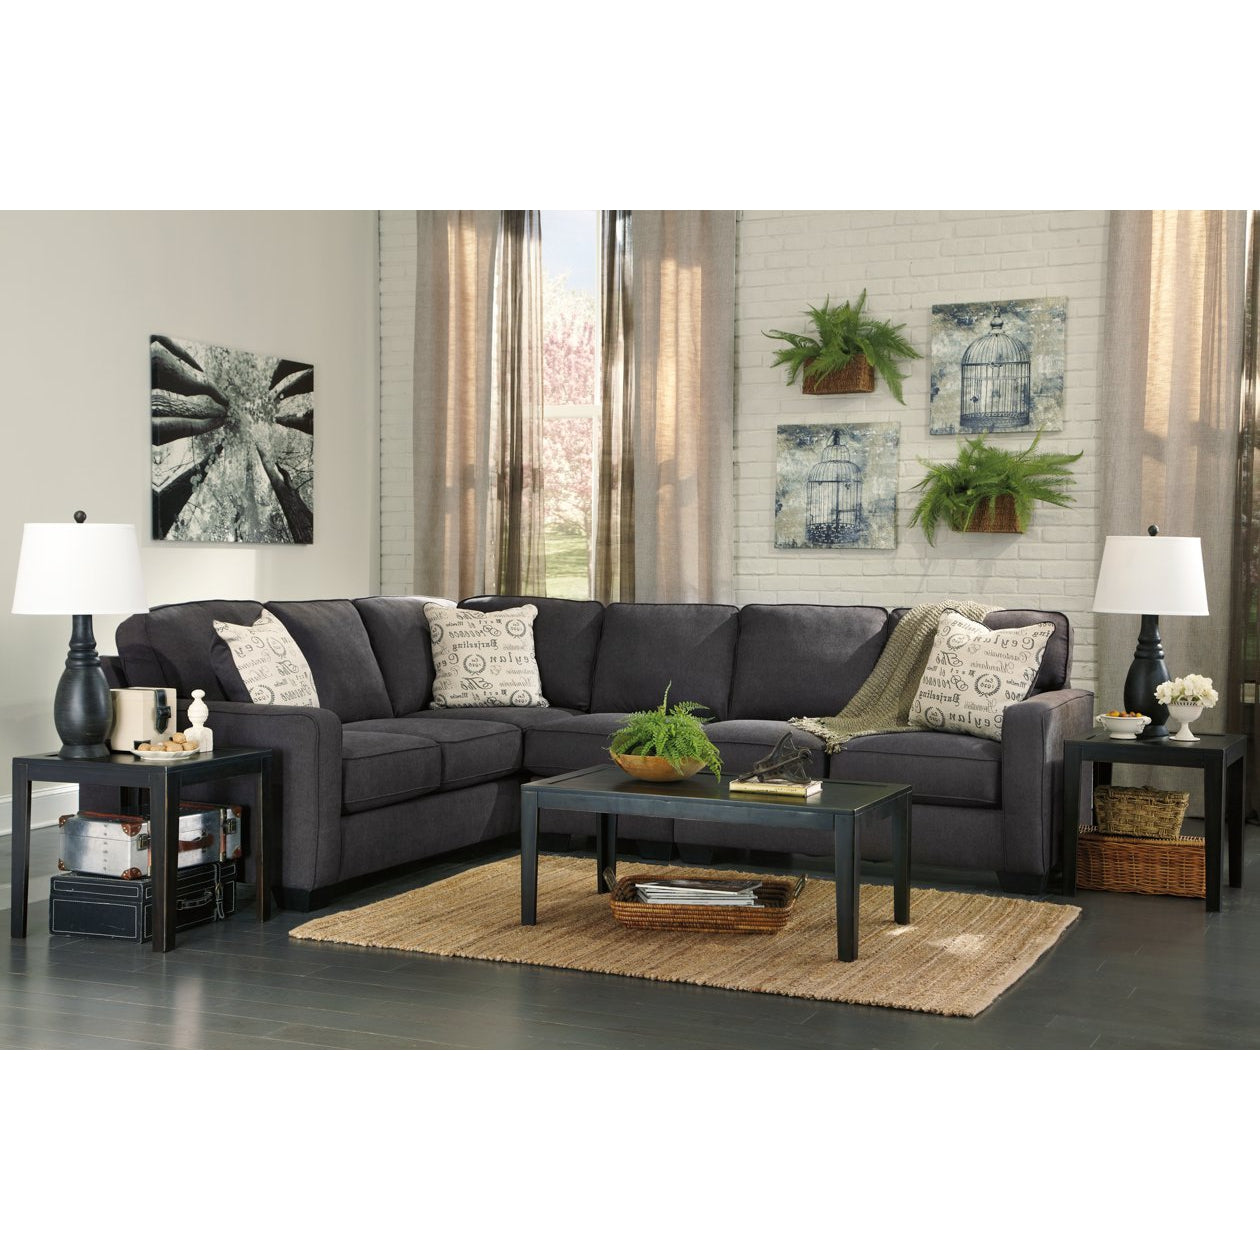 Bermuda Grey 3-Piece Sectional